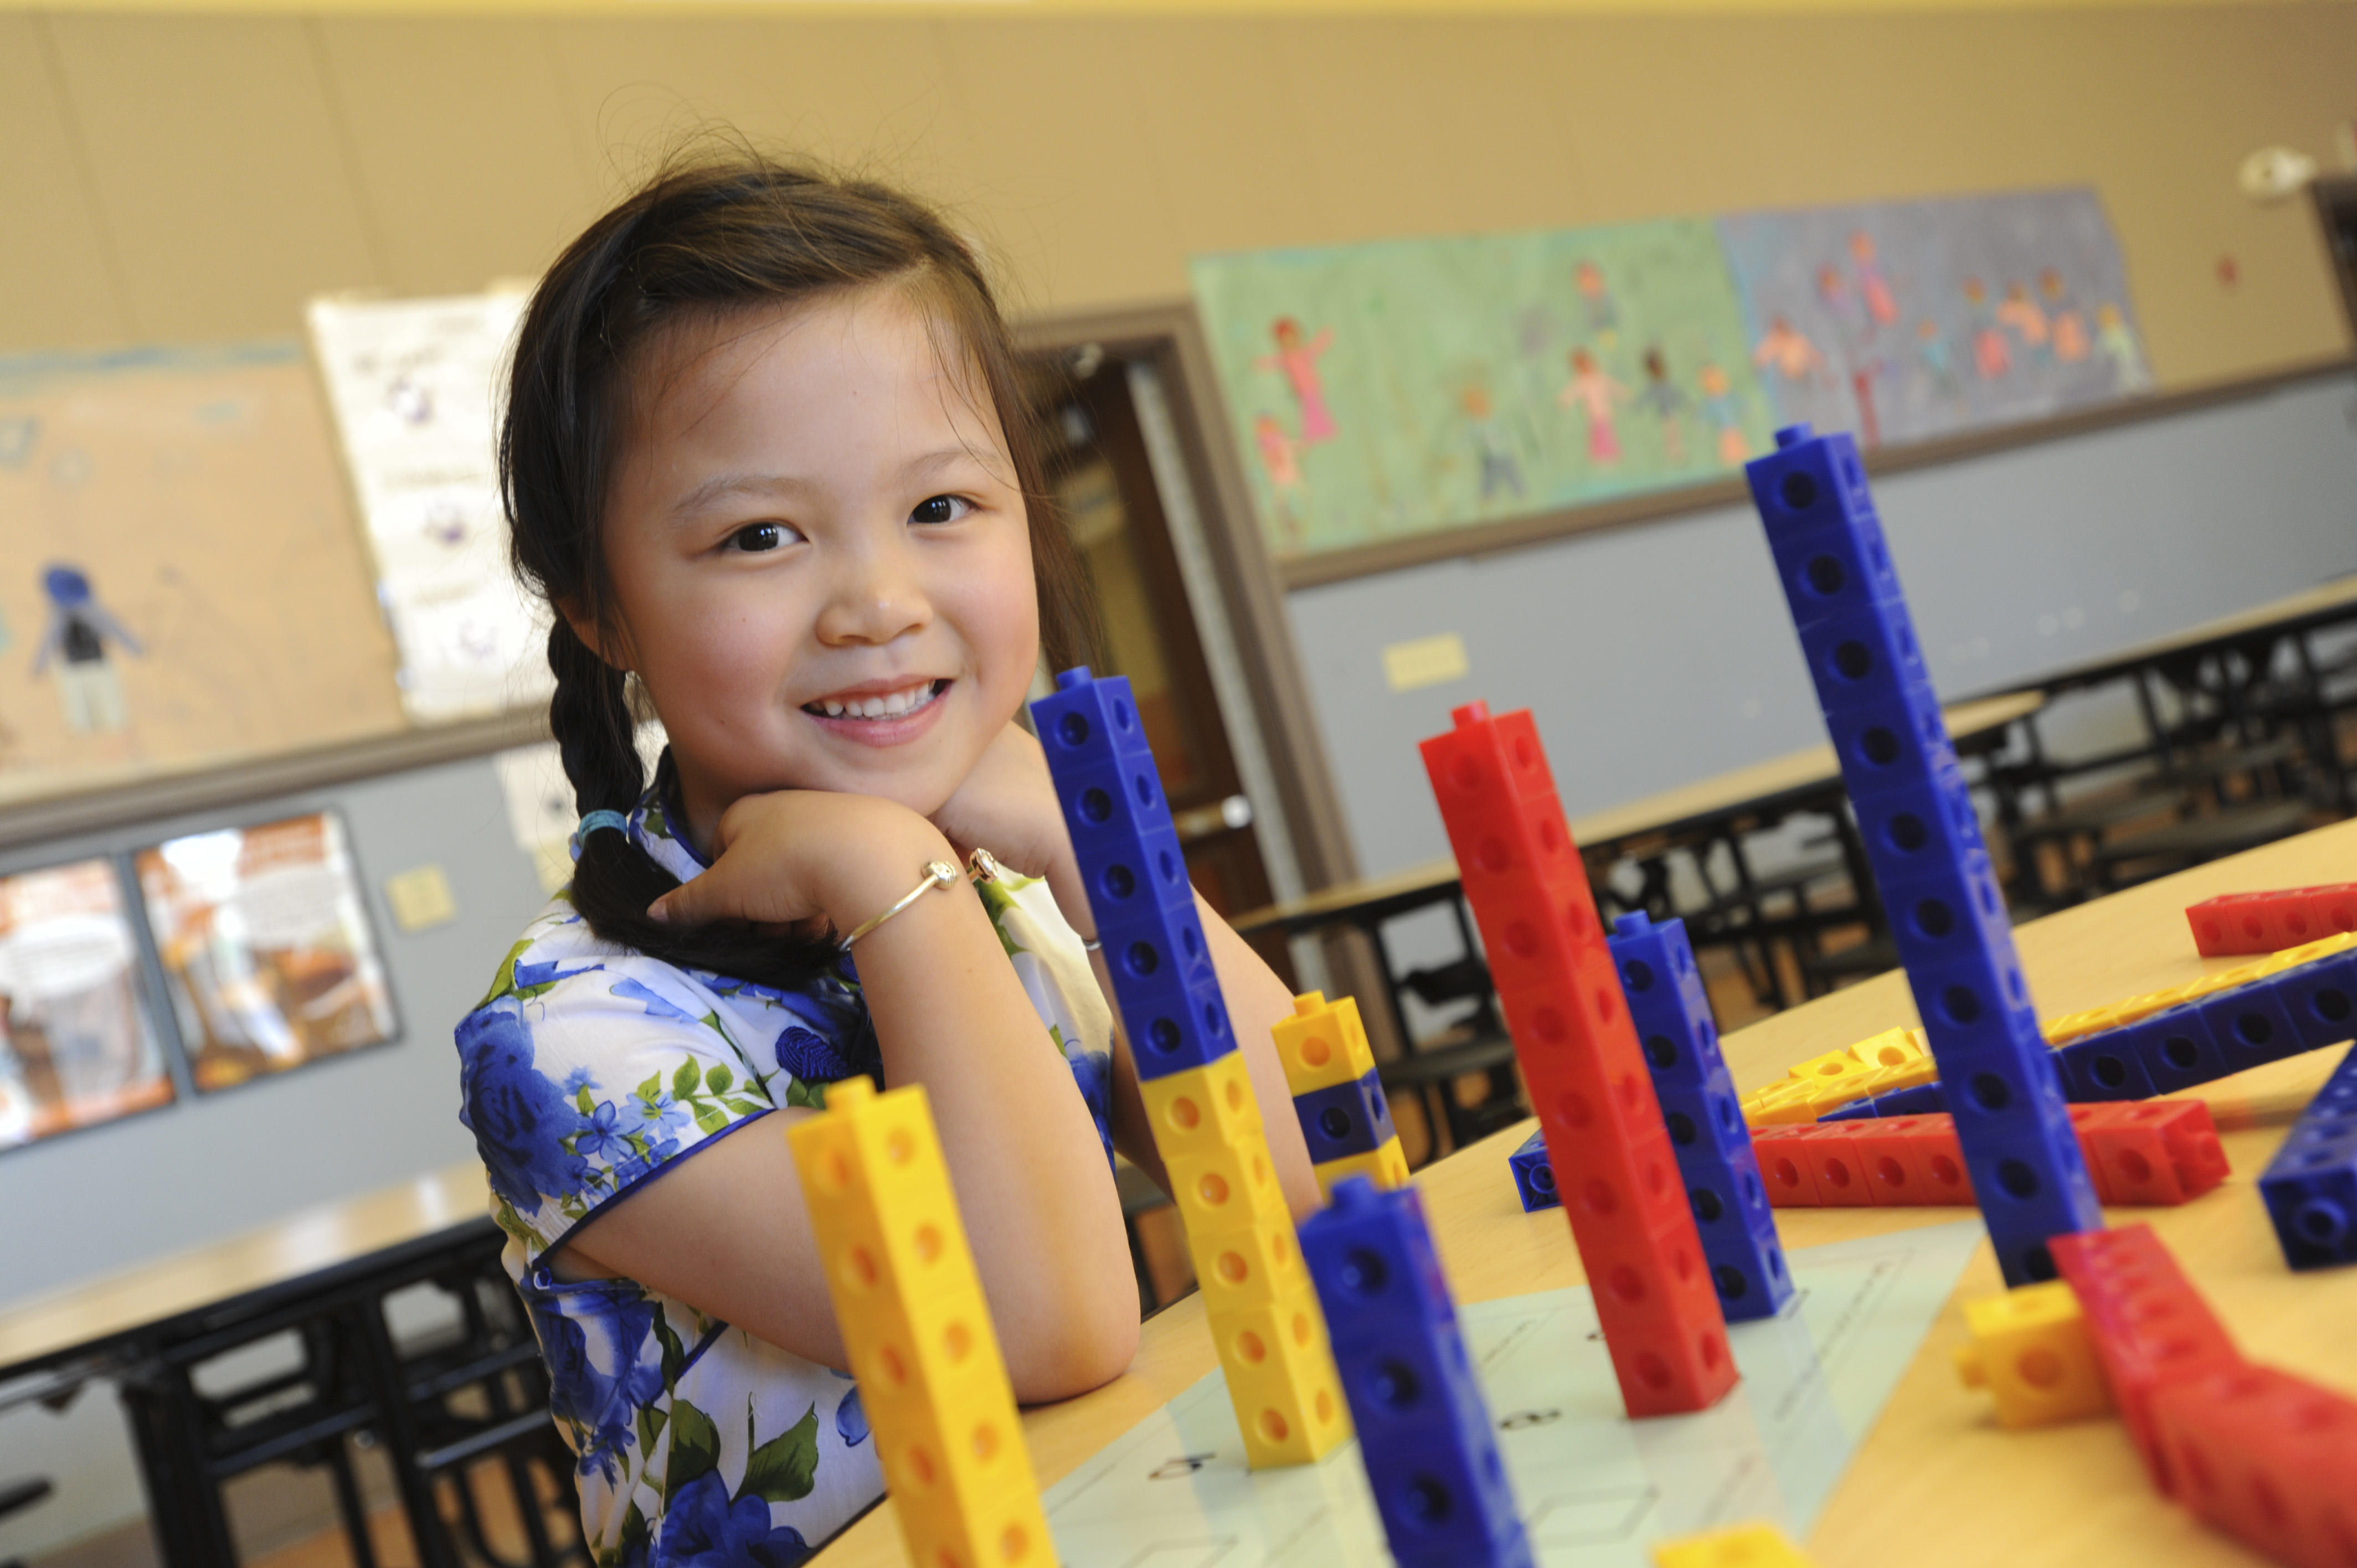 Female student smiling while building with manipulative blocks.